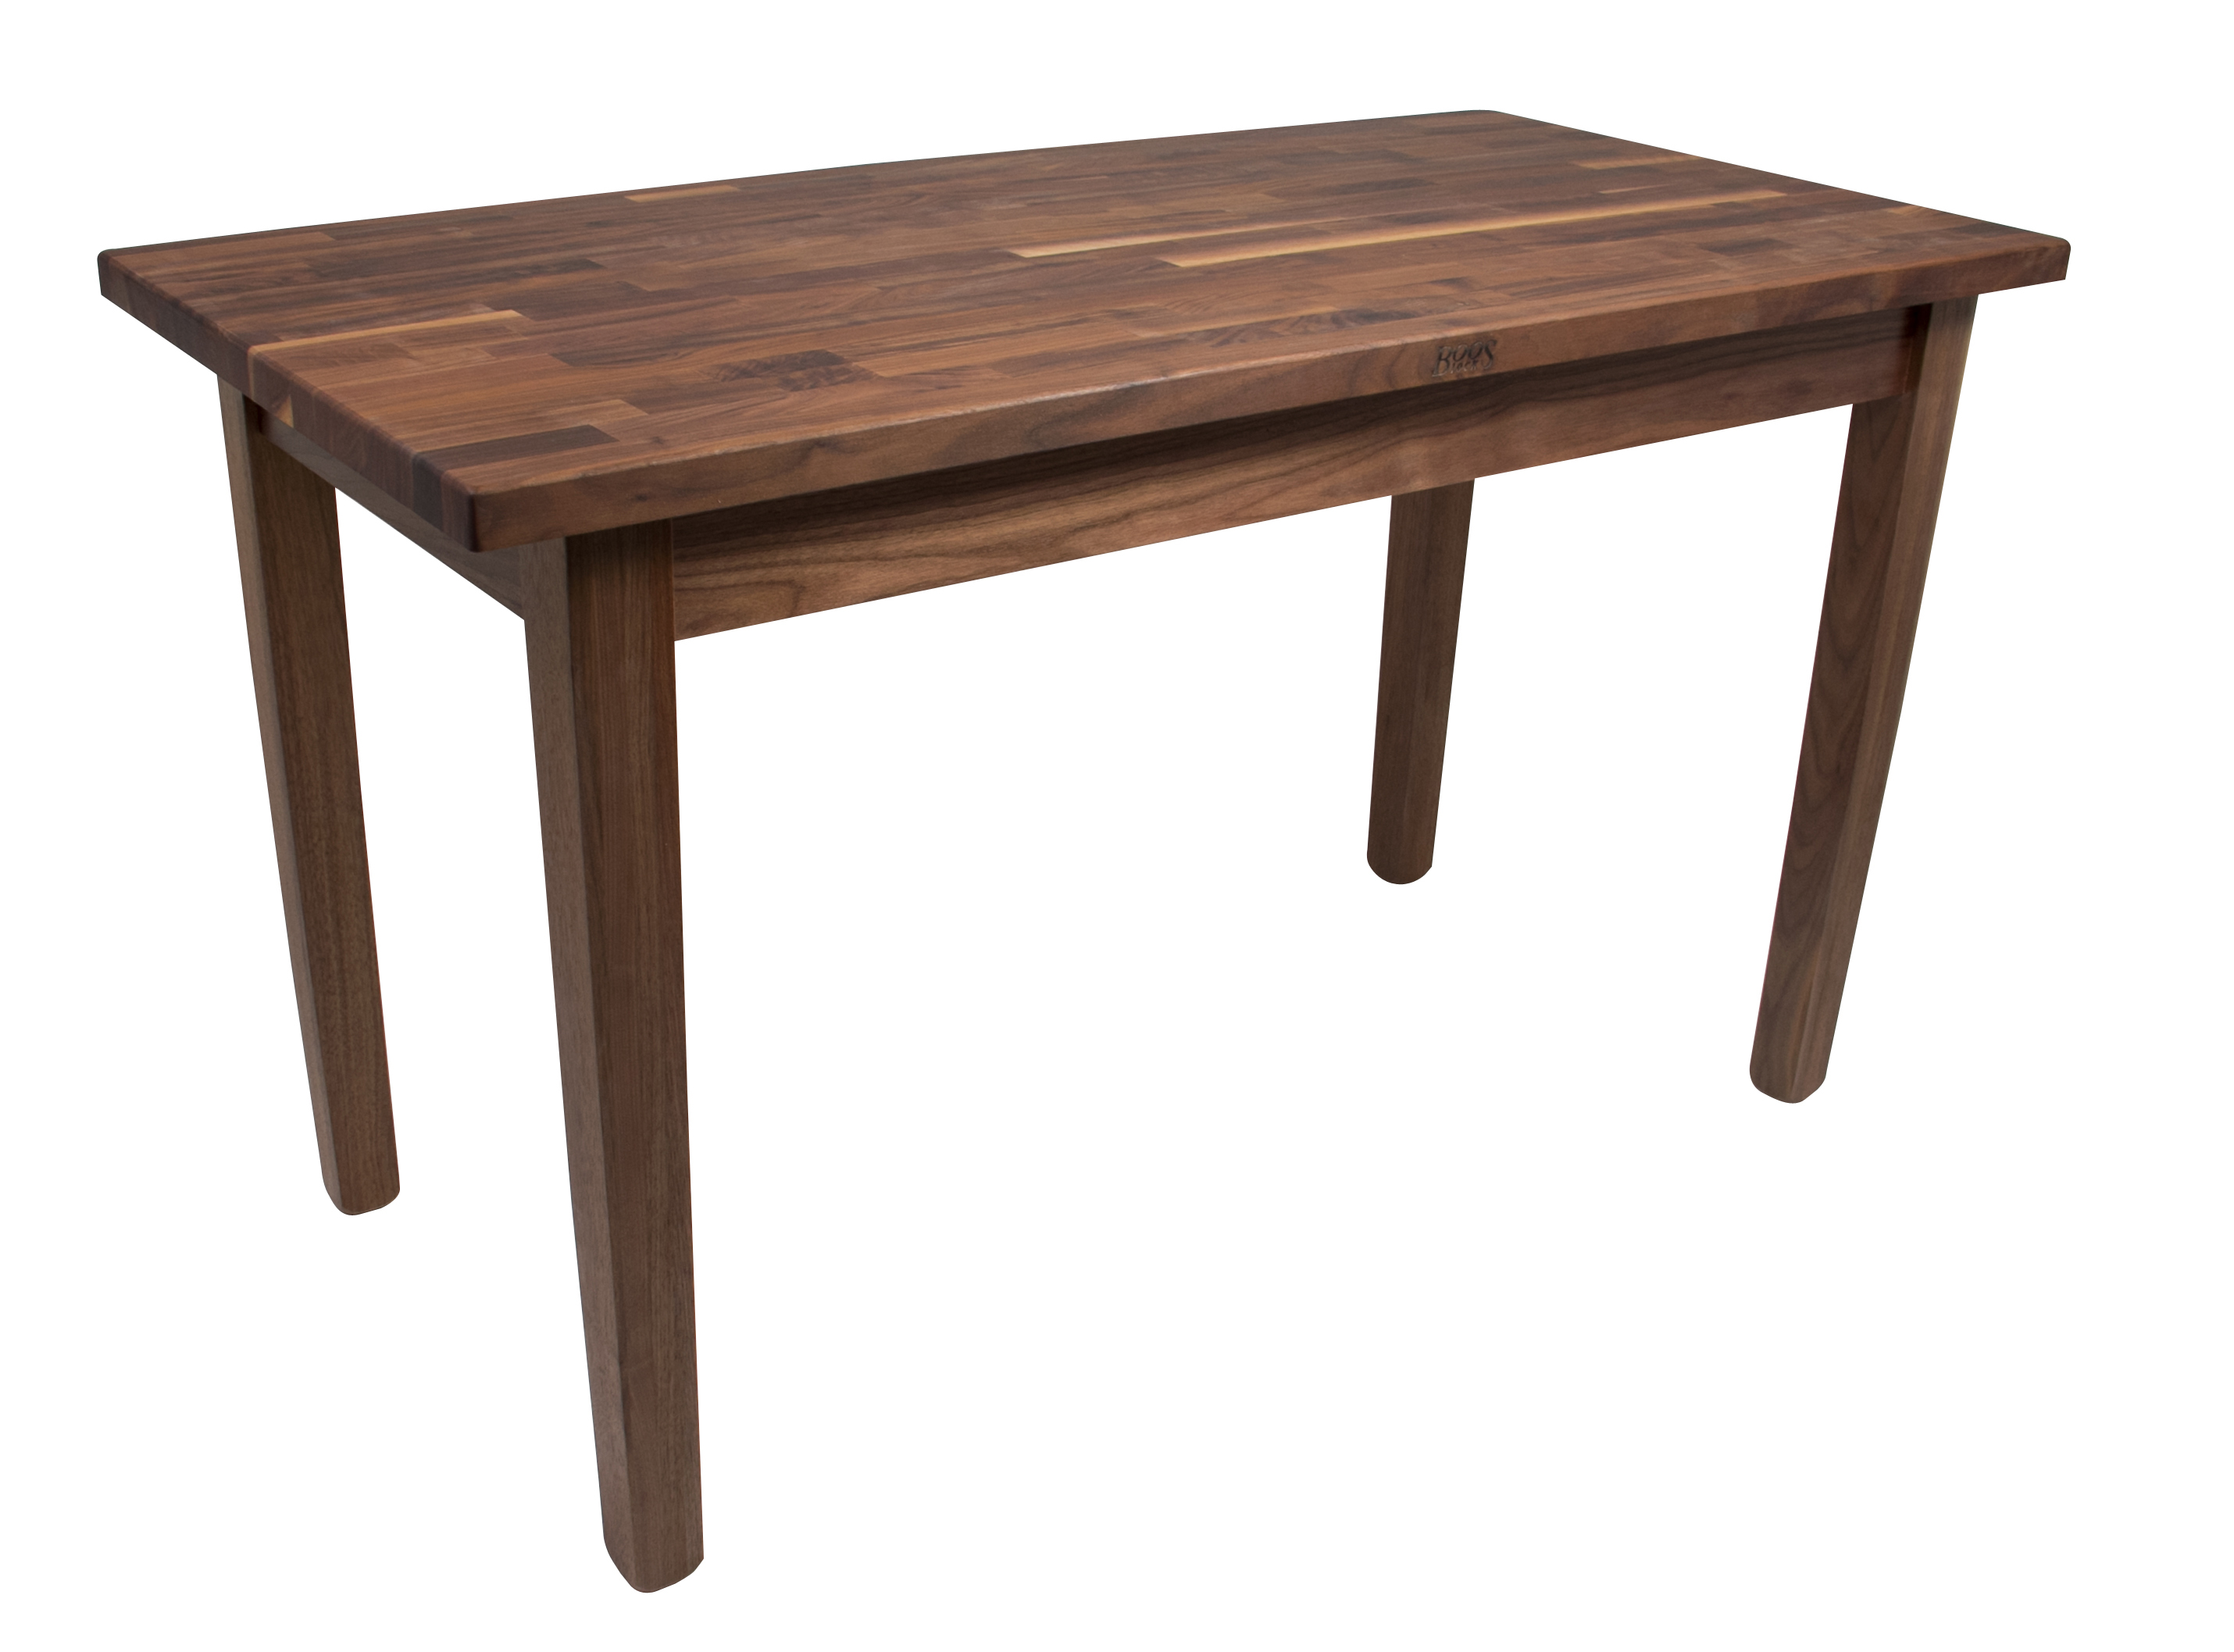 John Boos Blended-Grain Walnut Country Work Table